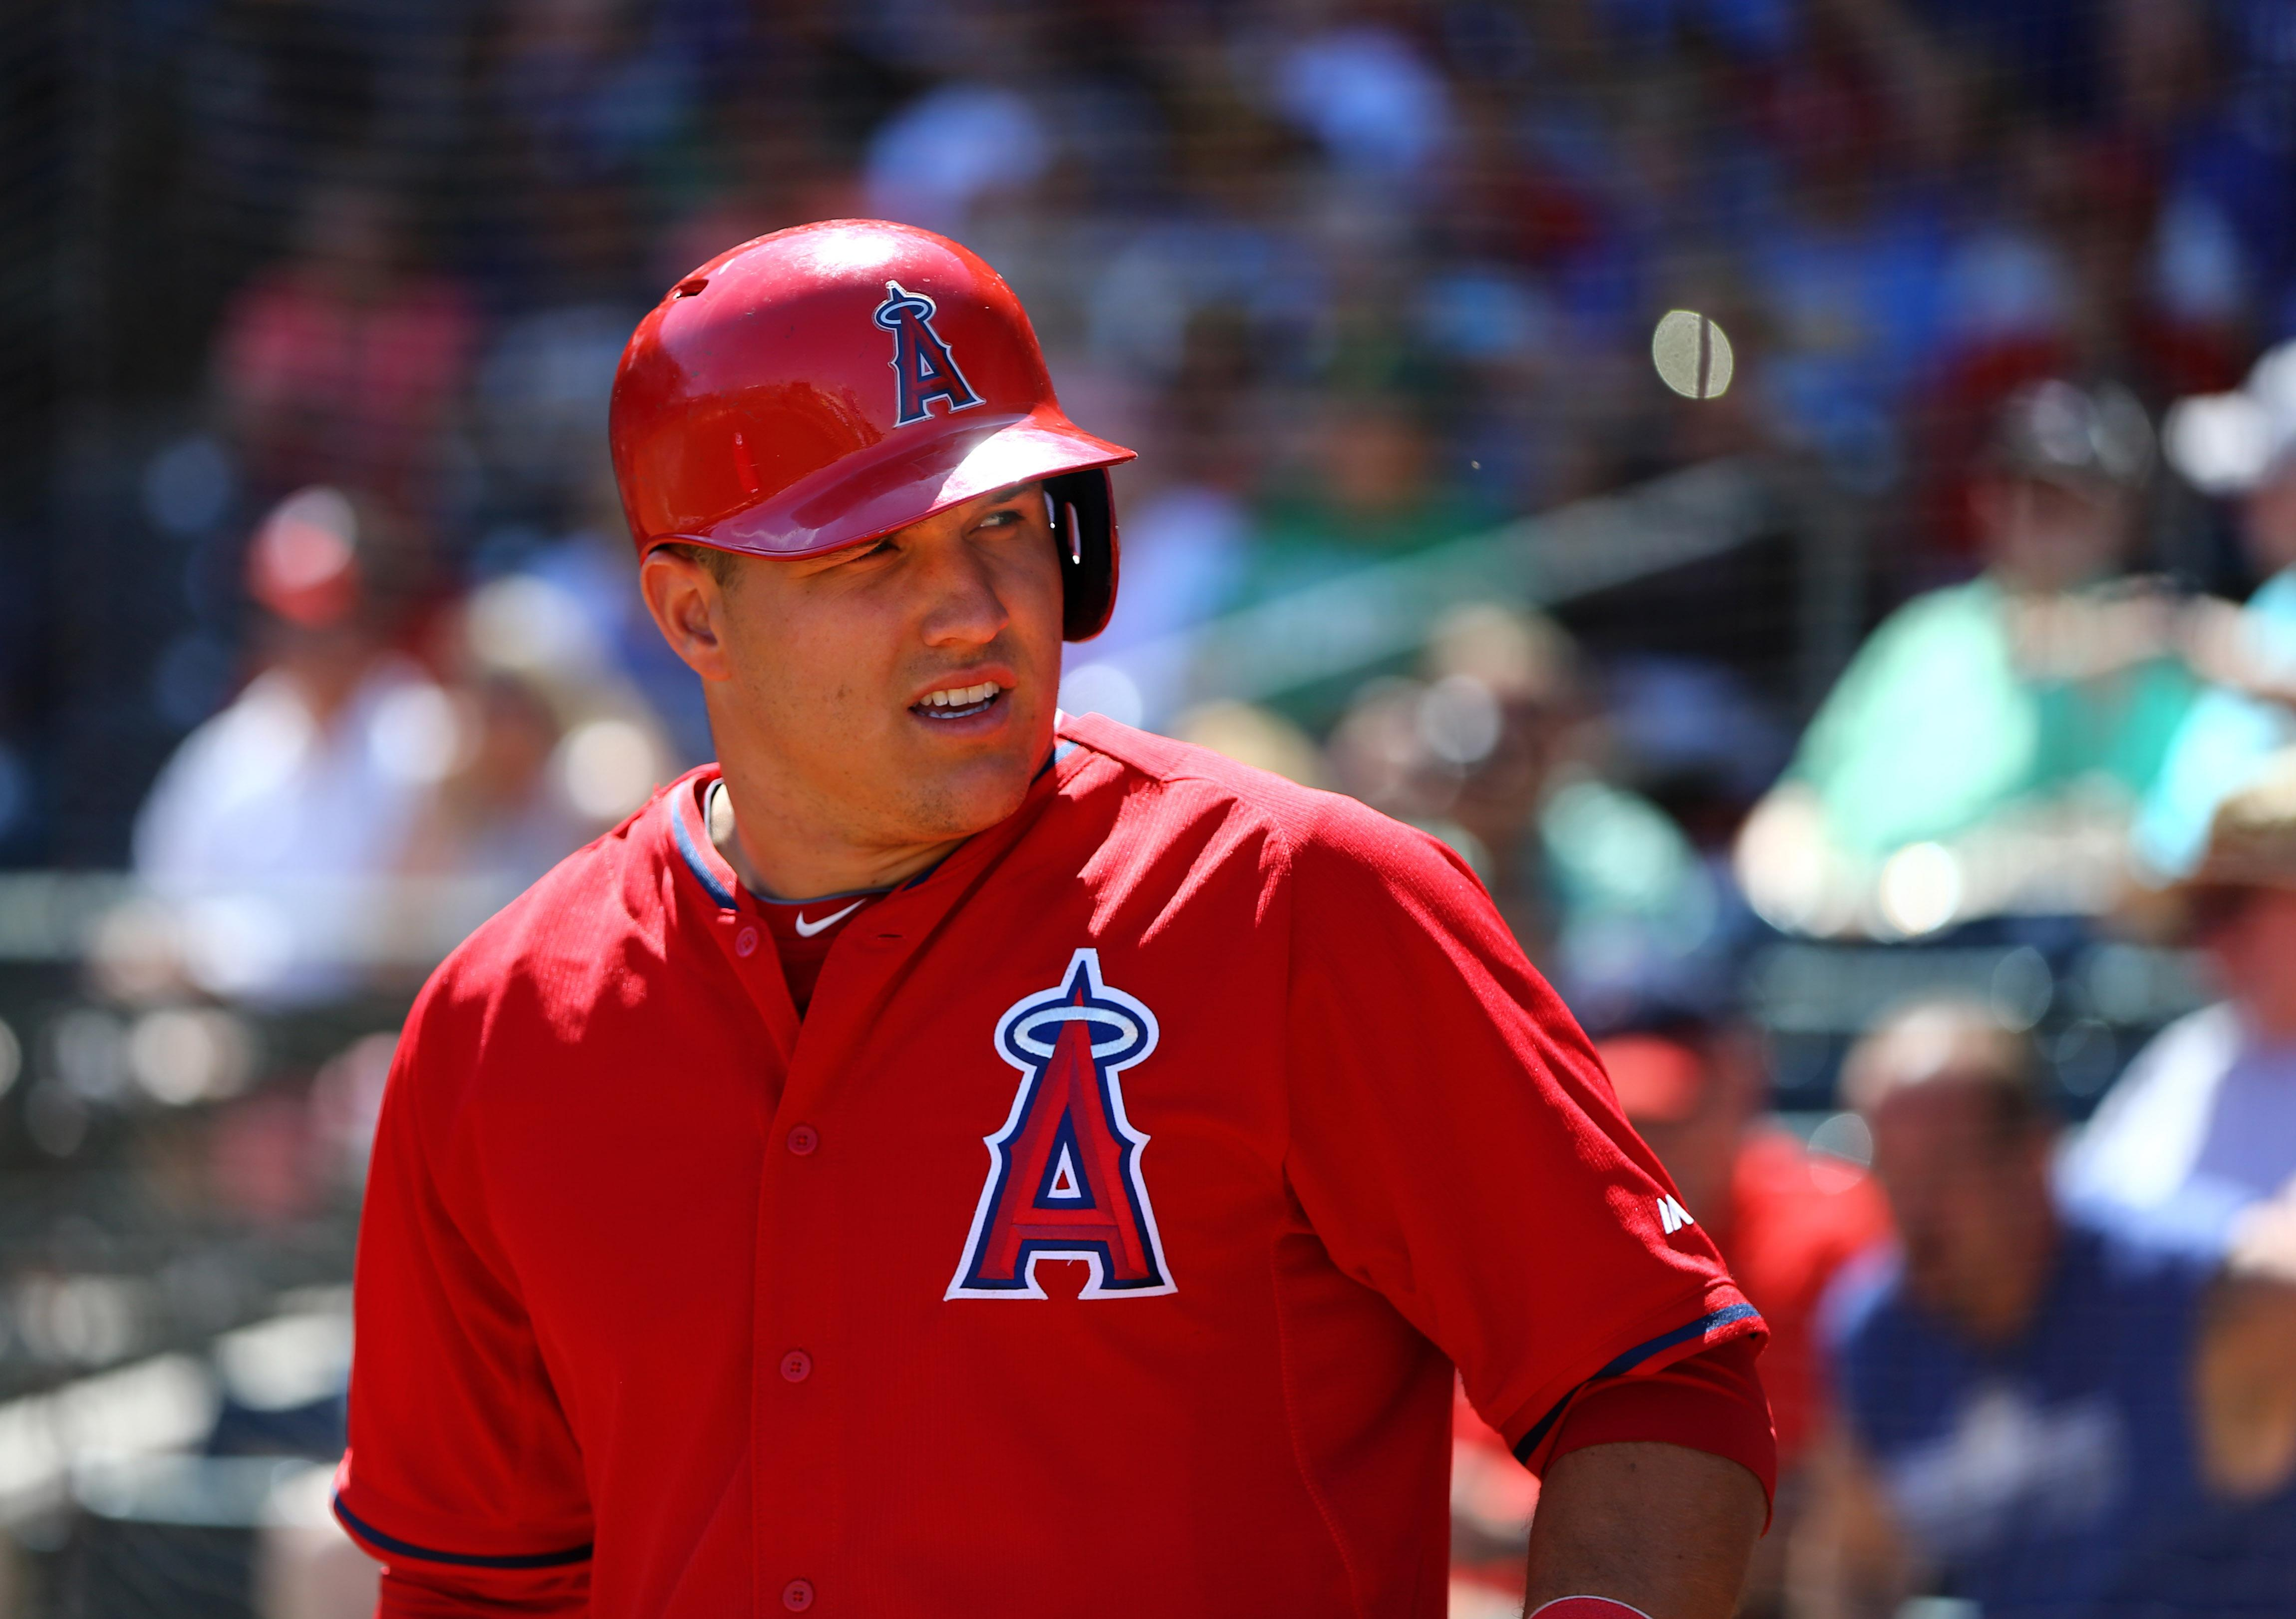 Mike Trout robs a homer and hits a homer in big spring performance